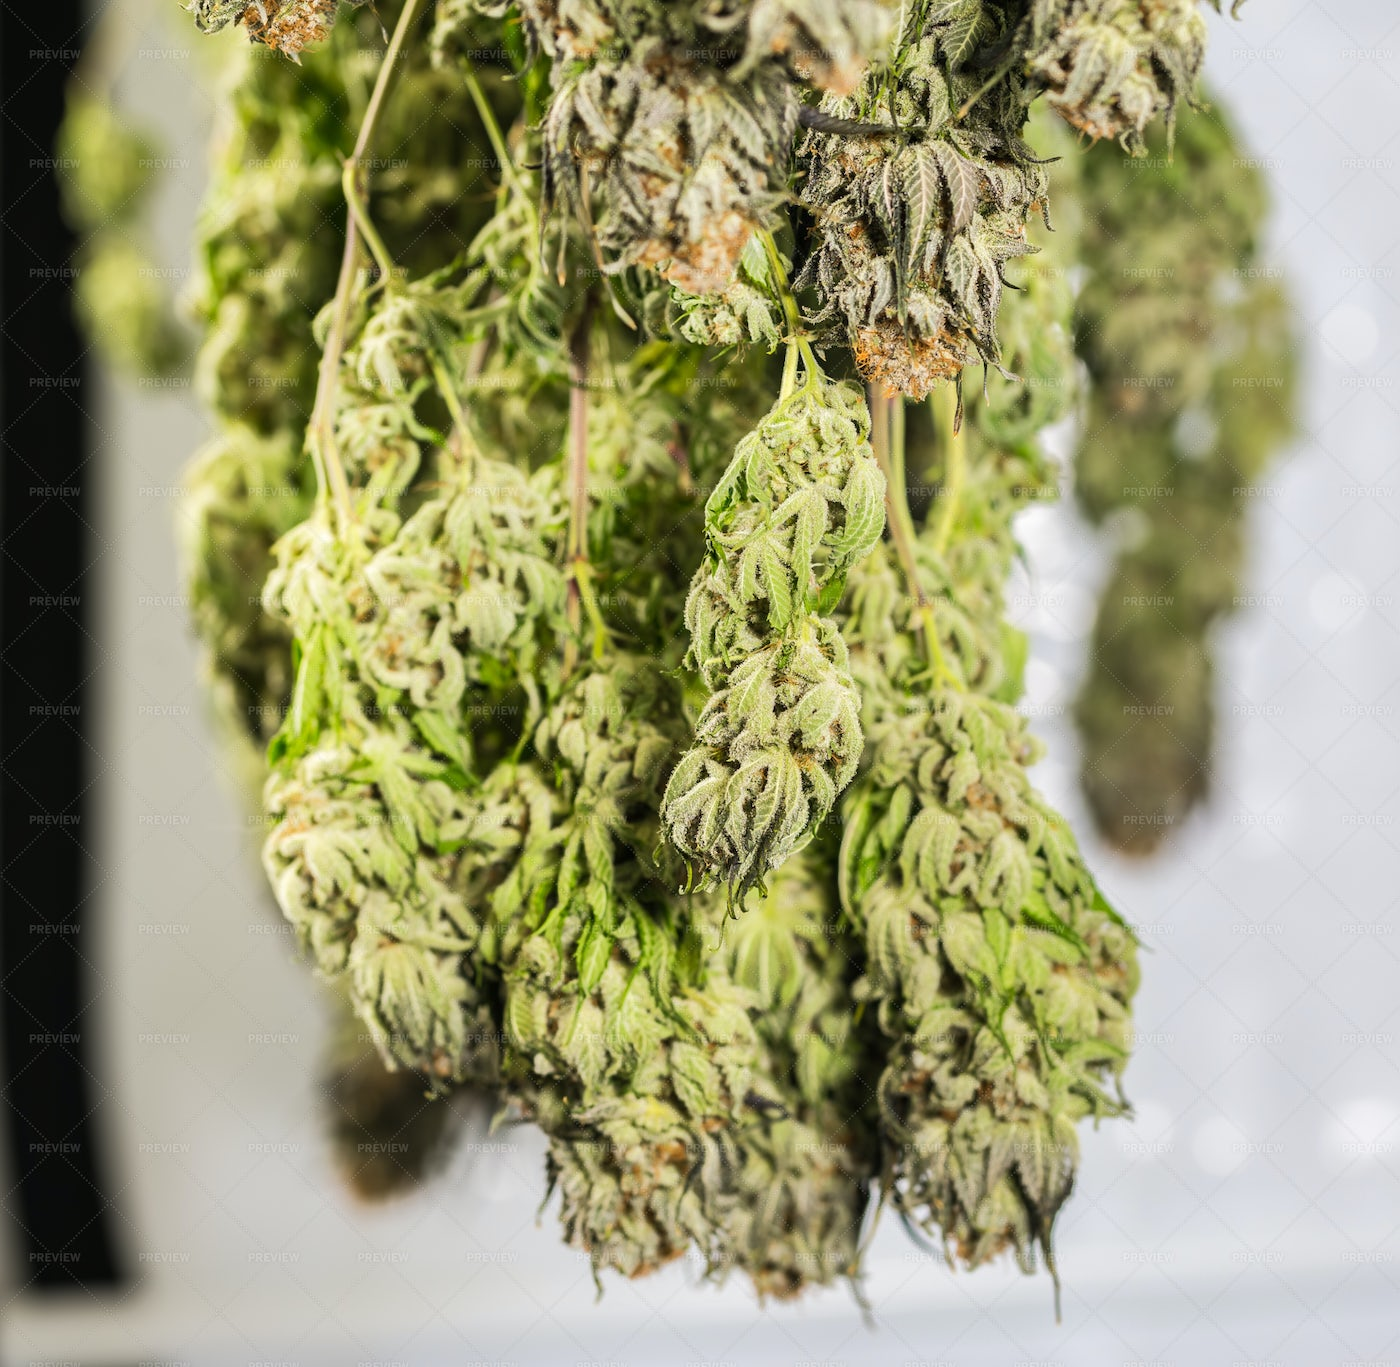 Cannabis Hanging To Dry Close-Up: Stock Photos